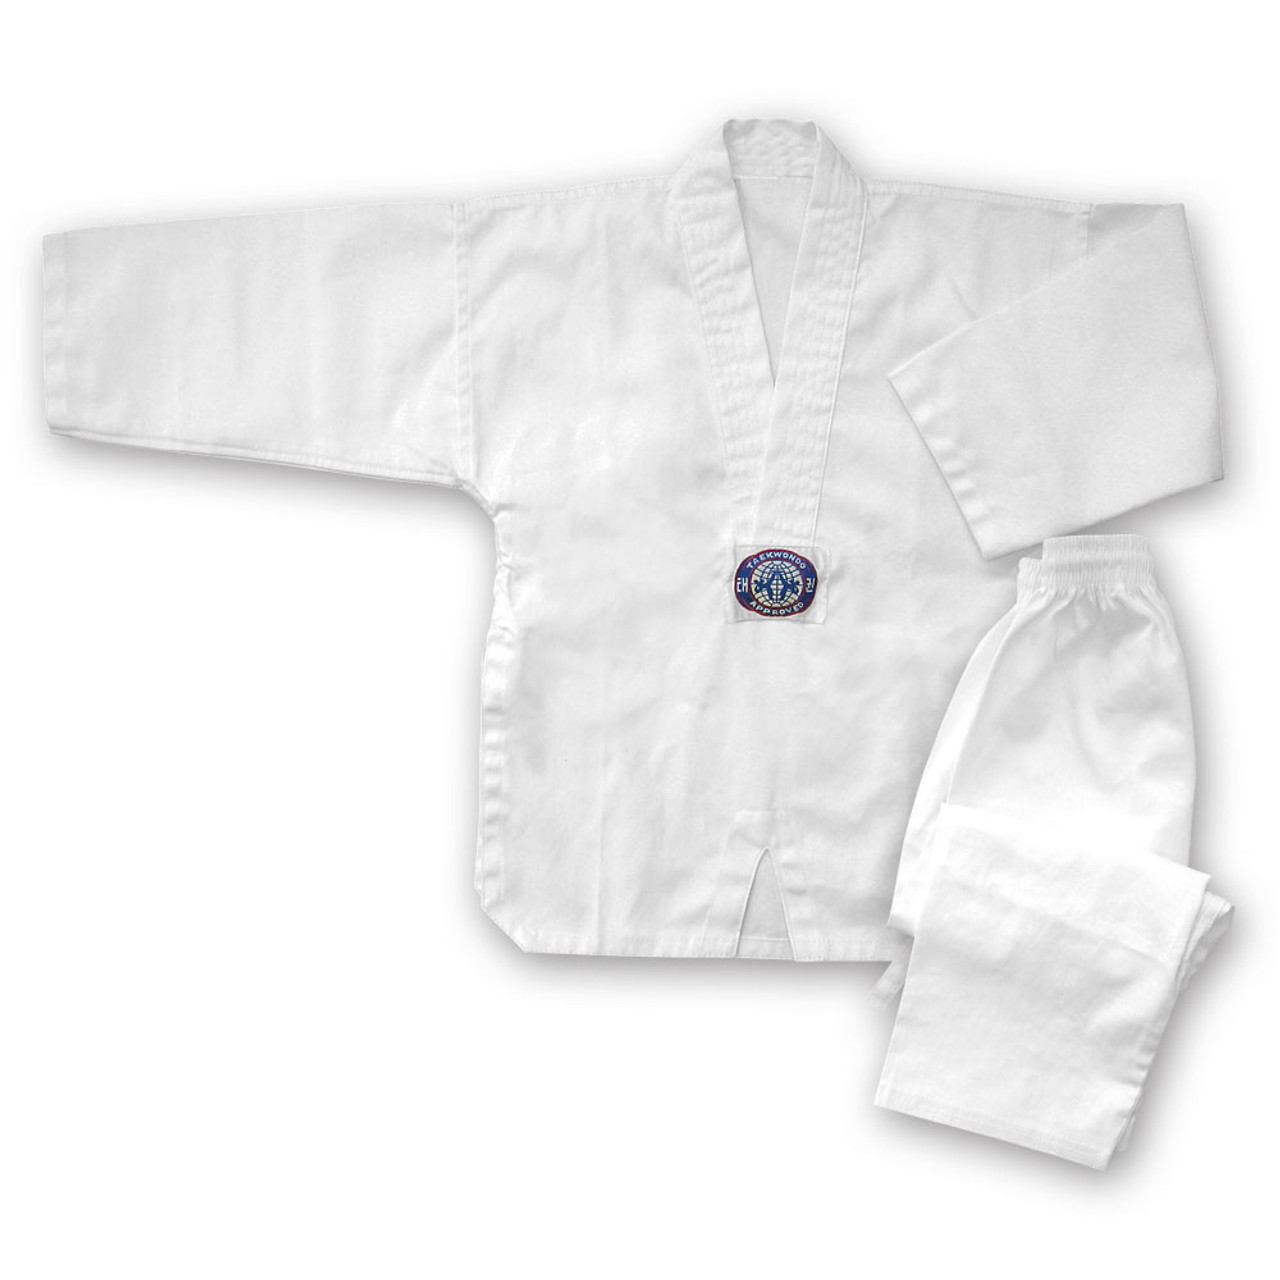 7oz Lightweight TKD Student Uniform